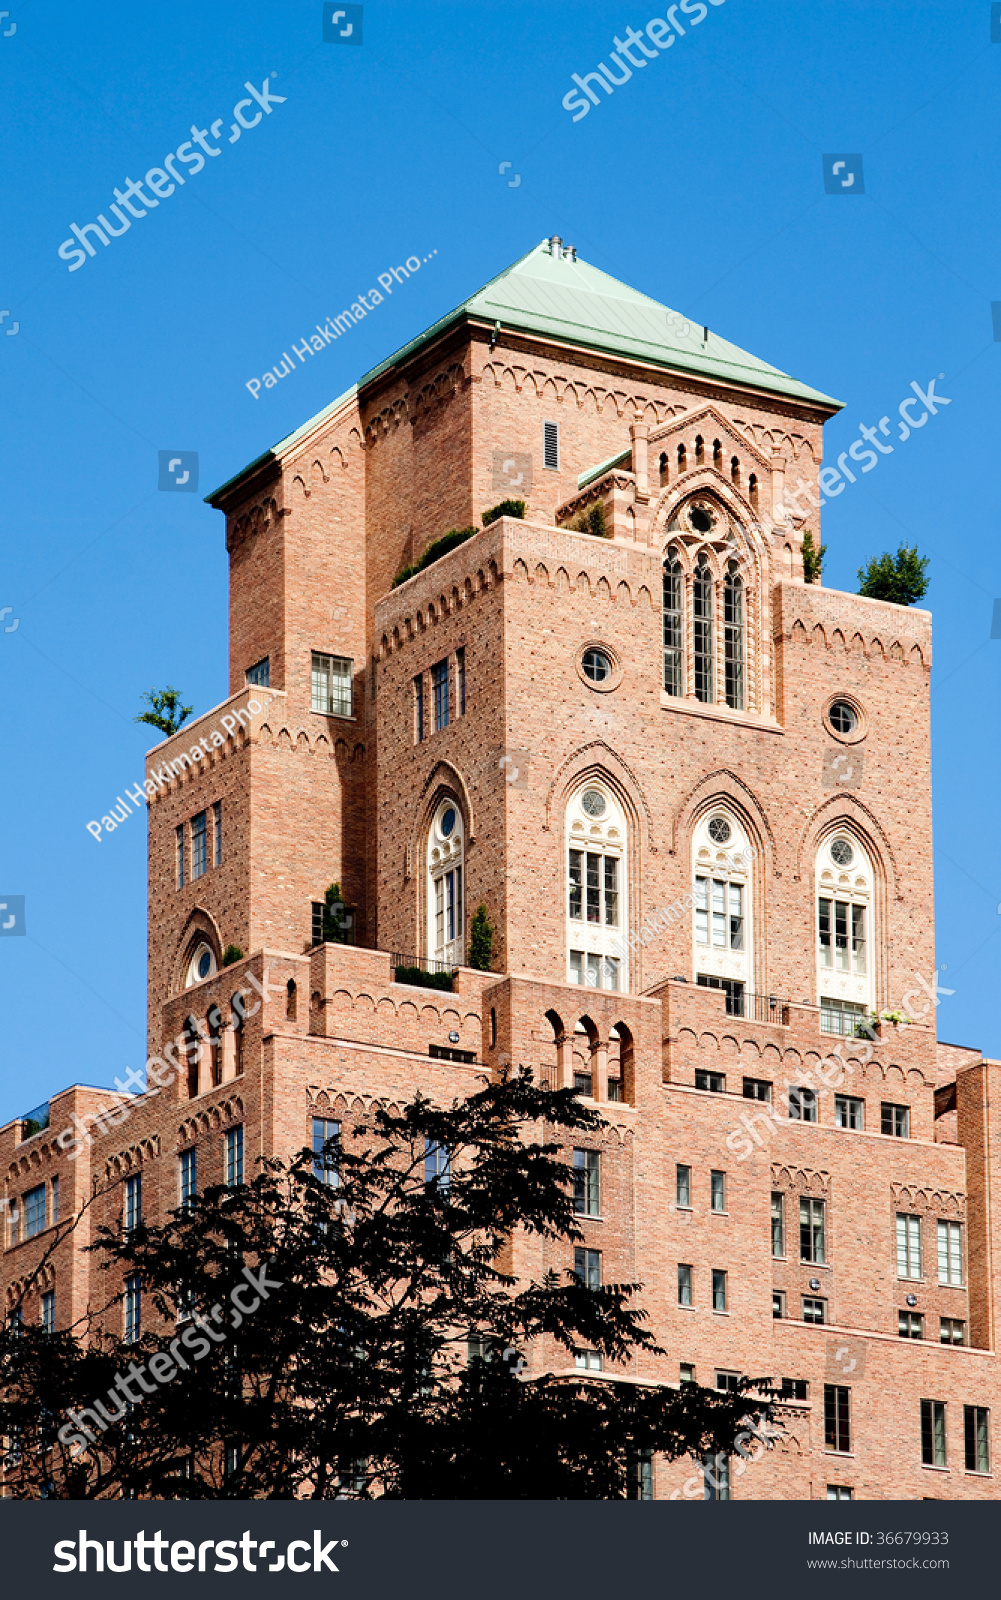 Brick Apartment Building Window old style architecture brick apartment building with gothic arched